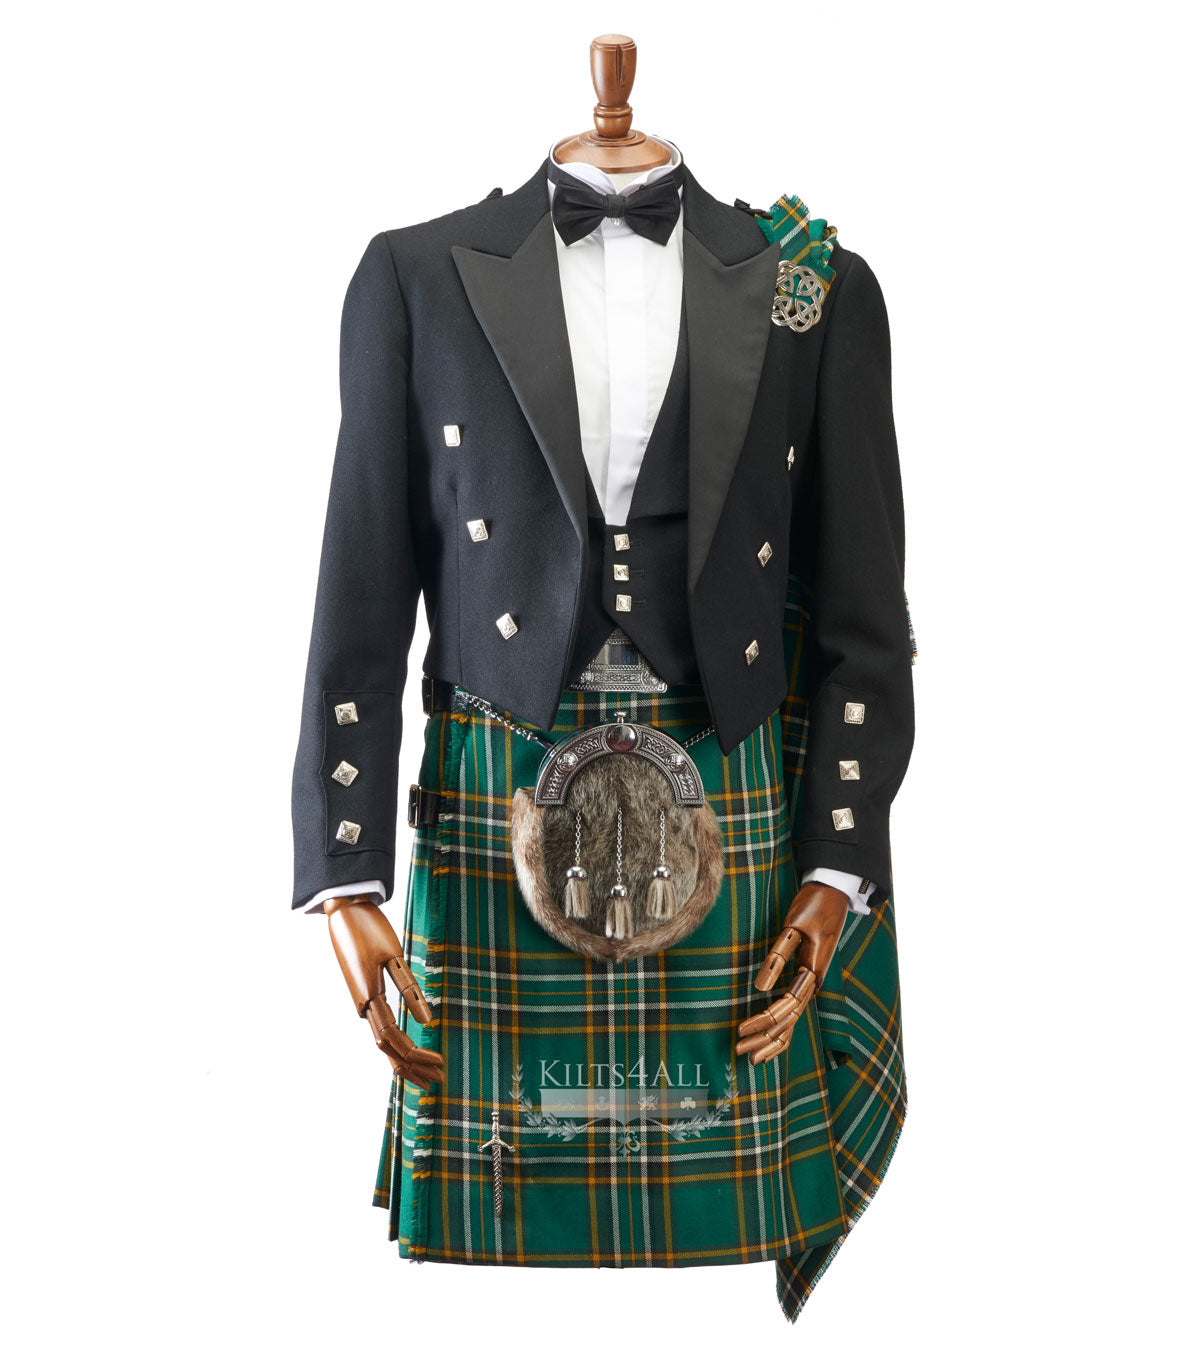 Mens Irish Tartan Kilt Outfit to Hire - Prince Charlie Jacket & 3 Button Waistcoat